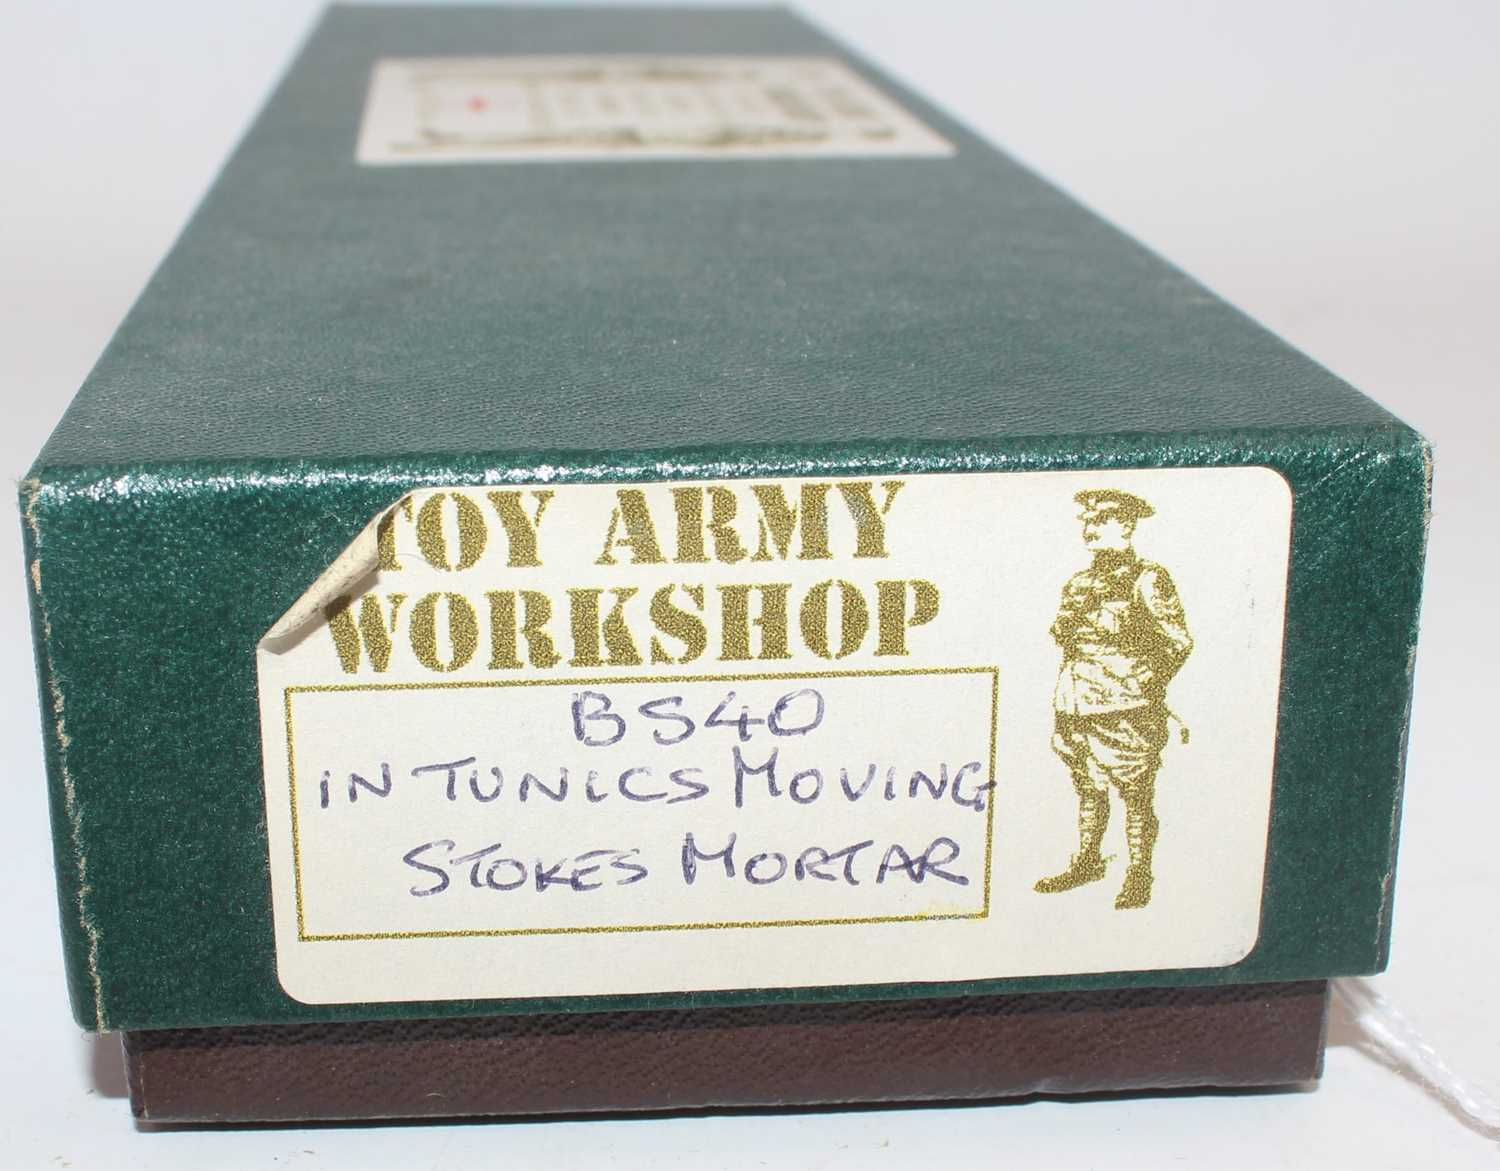 A Toy Army Workshop of the United Kingdom, white metal No. BS40, British Infantry moving Stokes - Image 2 of 2